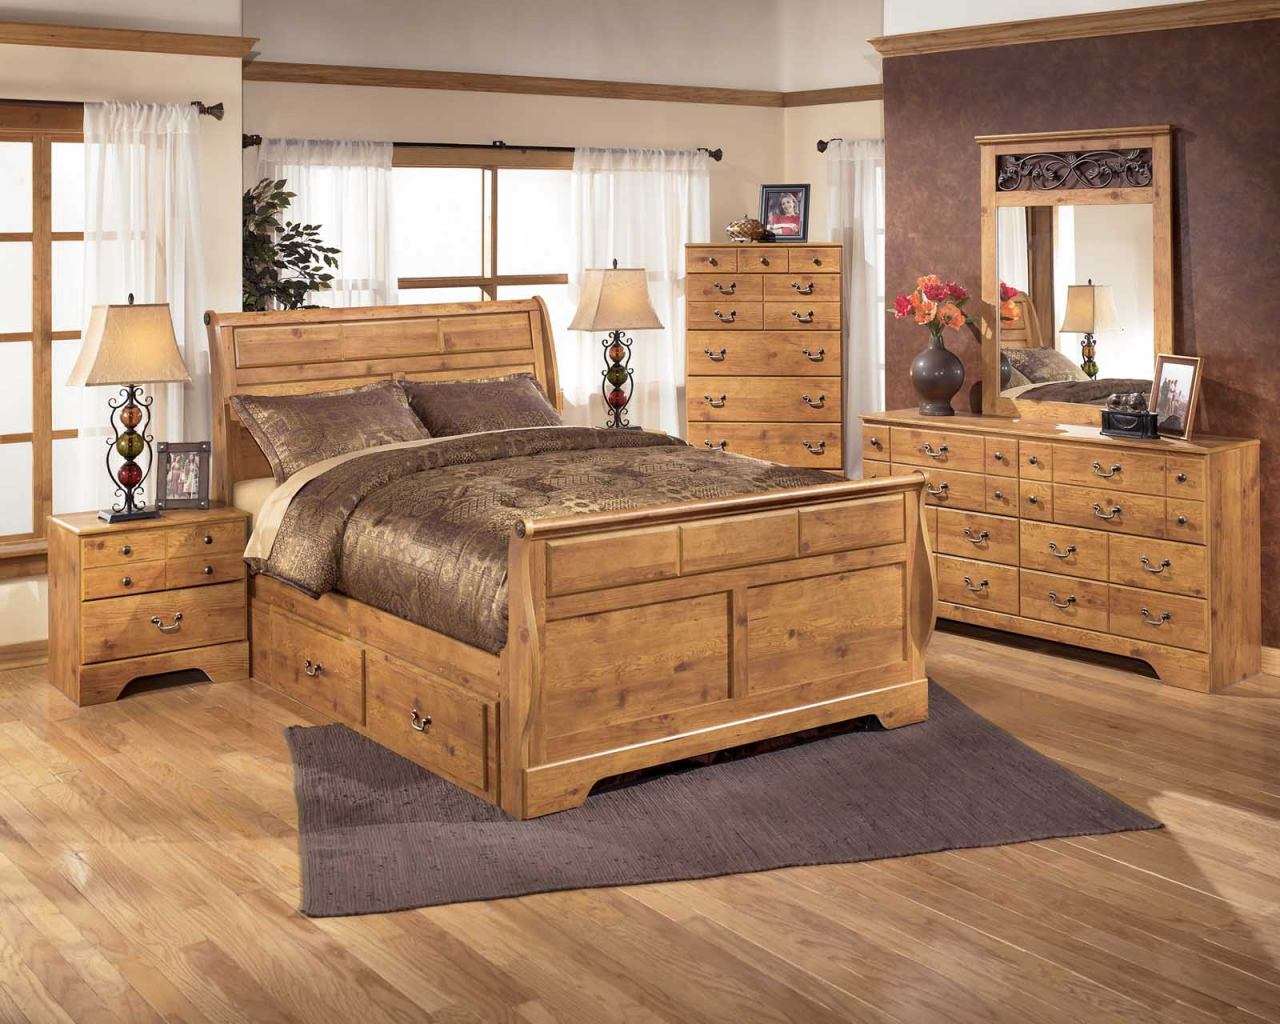 Cool Bedroom Sets With Drawers Under Bed Design Ideas